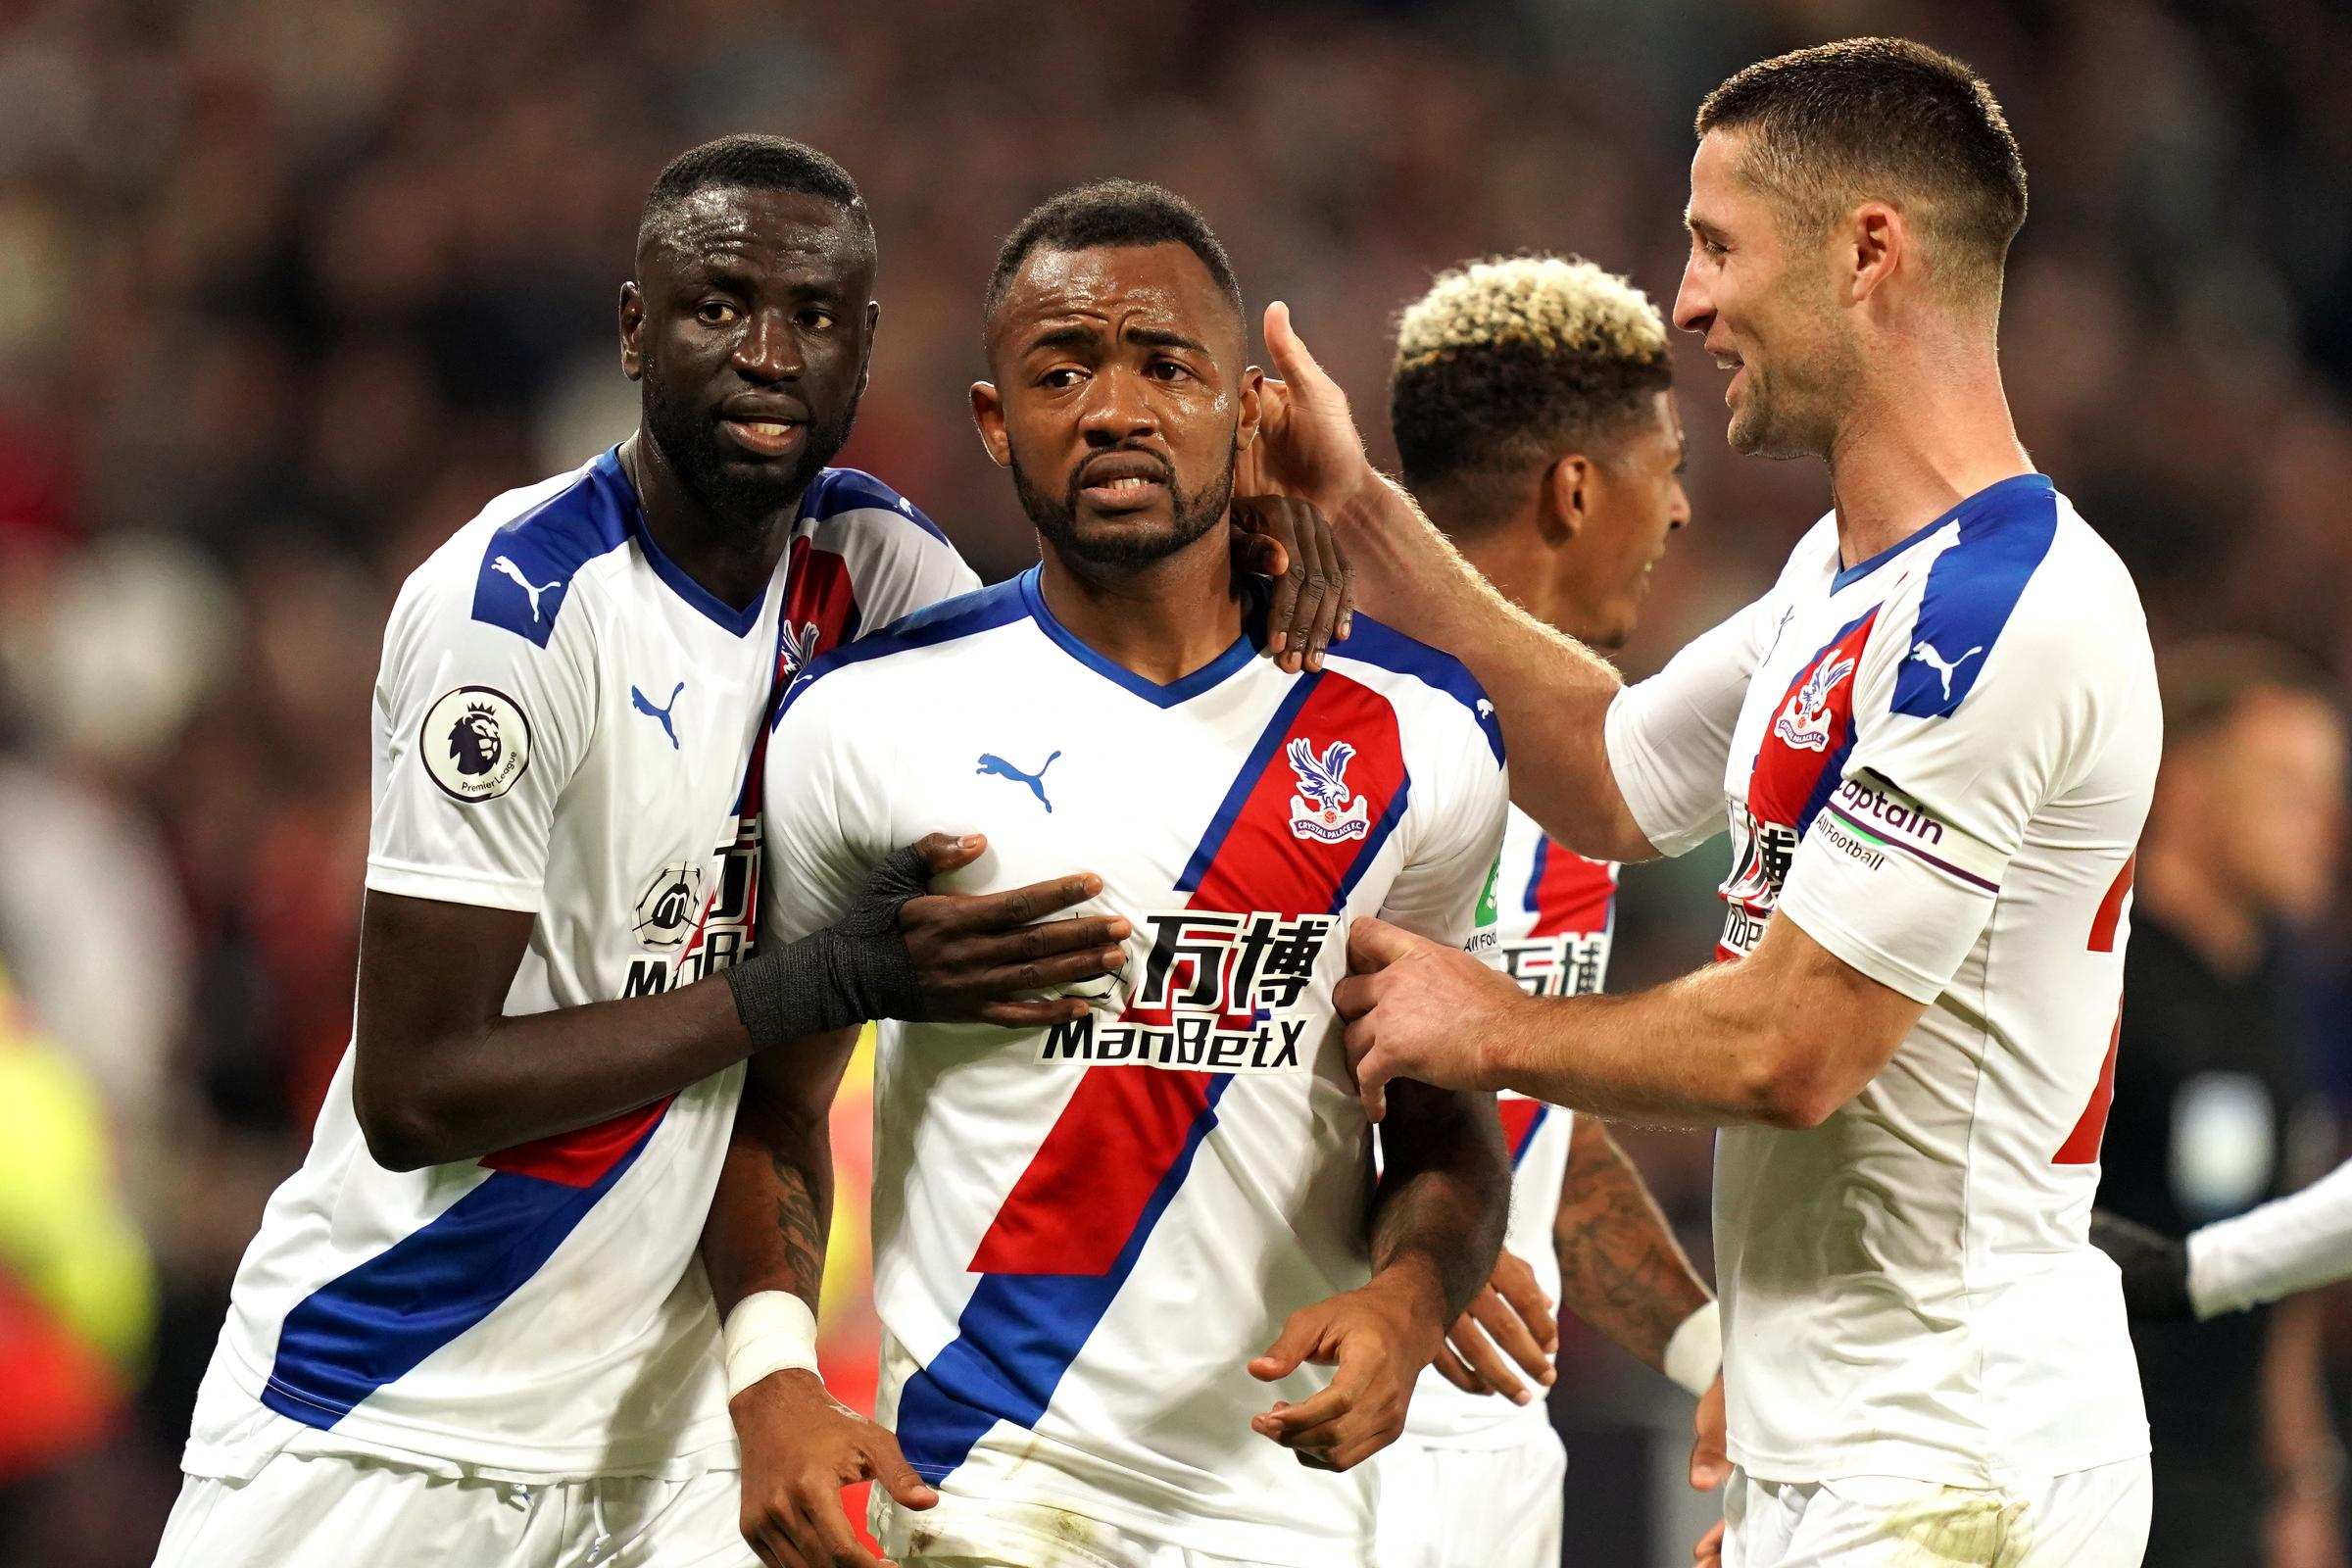 West Ham 1 Crystal Palace 2 - Five things we learned